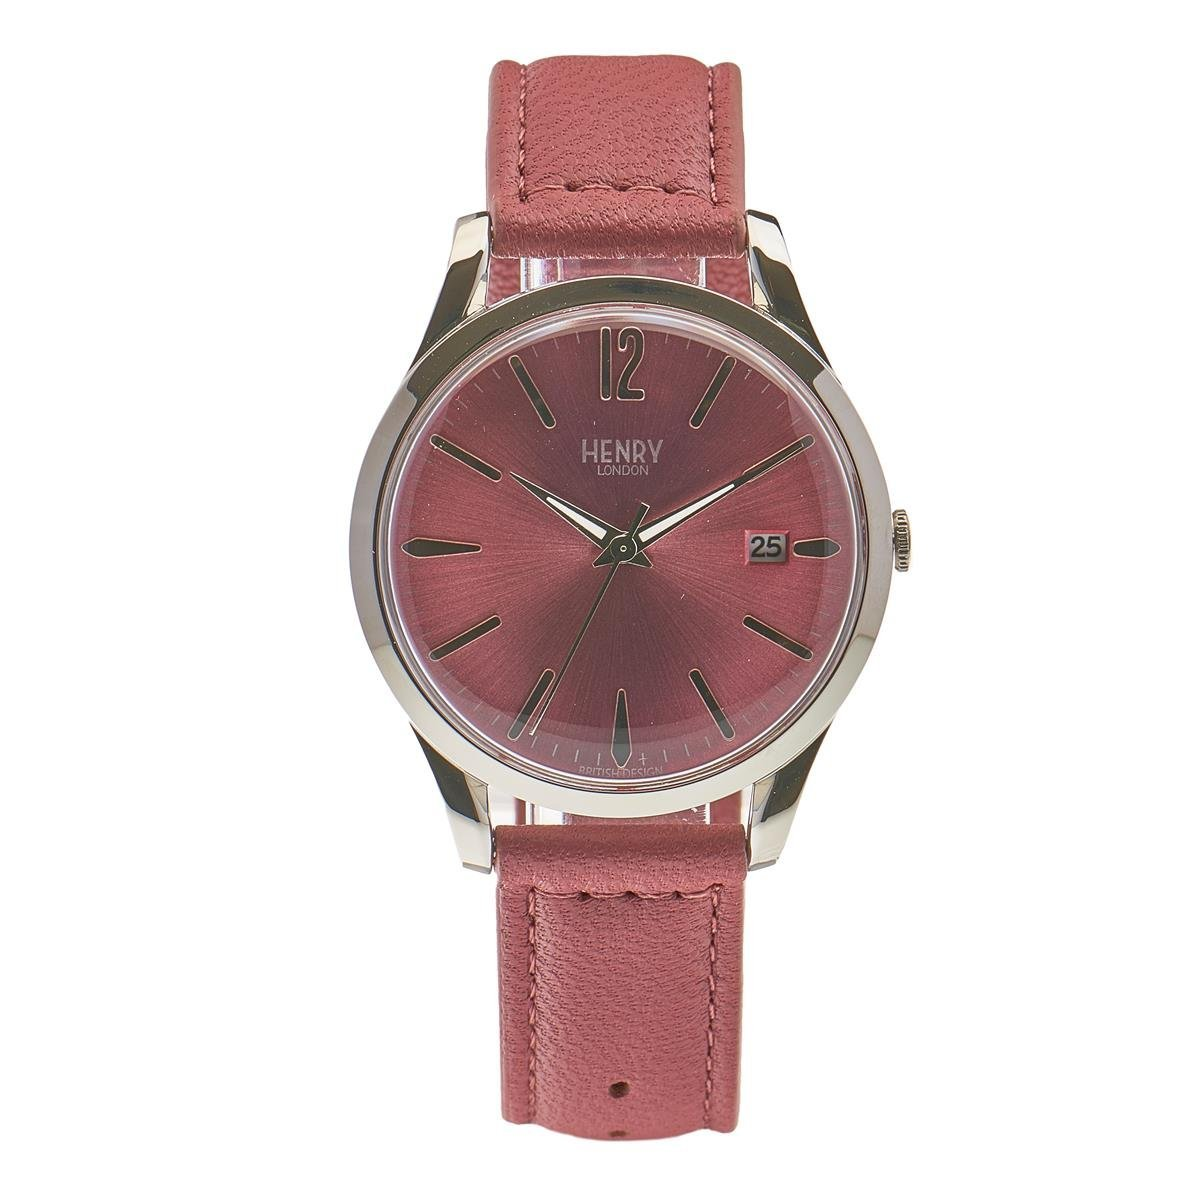 Henry London Unisex Hammersmith Quartz Watch with Pink Dial Analogue Display and Pink Leather Strap (Certified Refurbished)